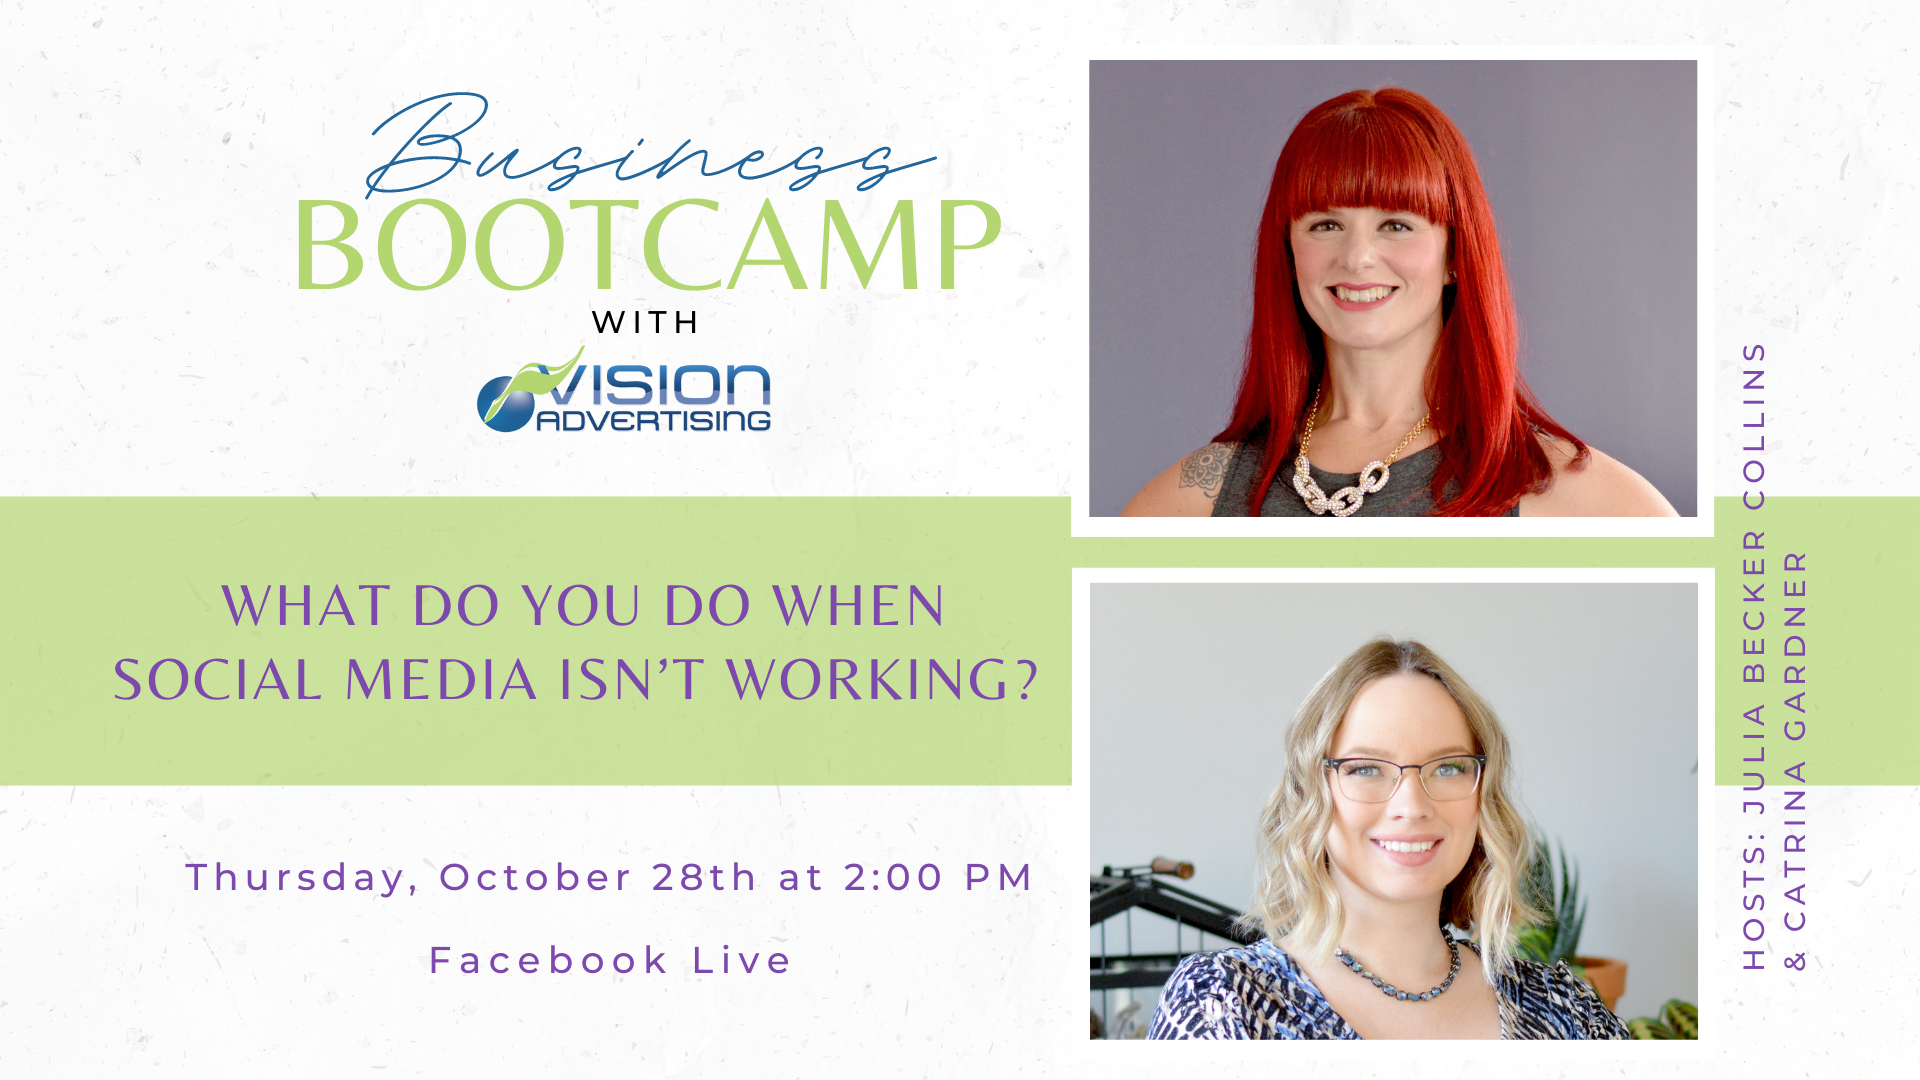 An event image of the Business Bootcamp, ``What Do You Do When Social Media Isn't Working?``